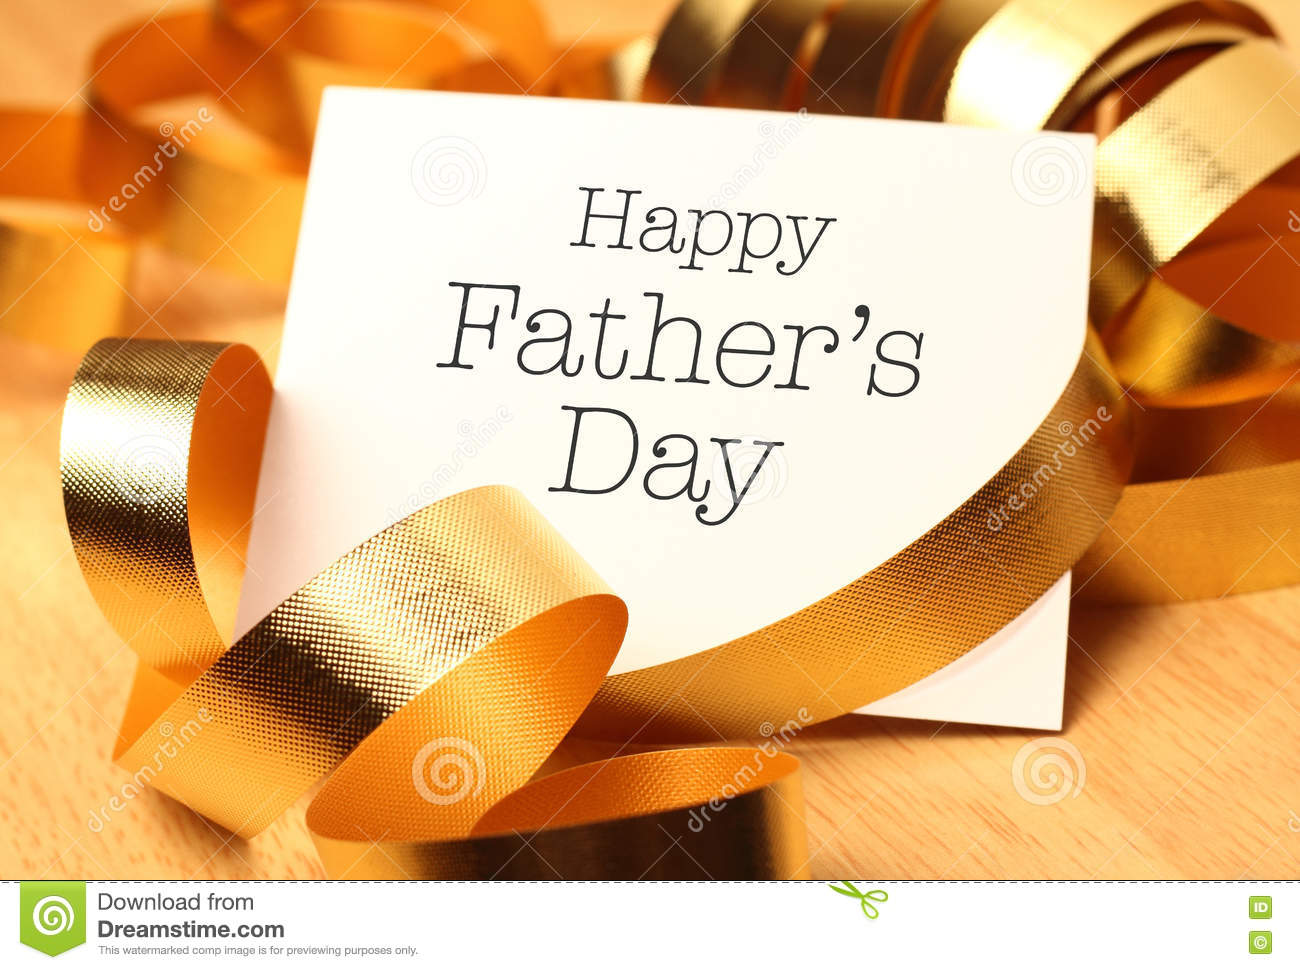 Happy fathers day with gold decoration.